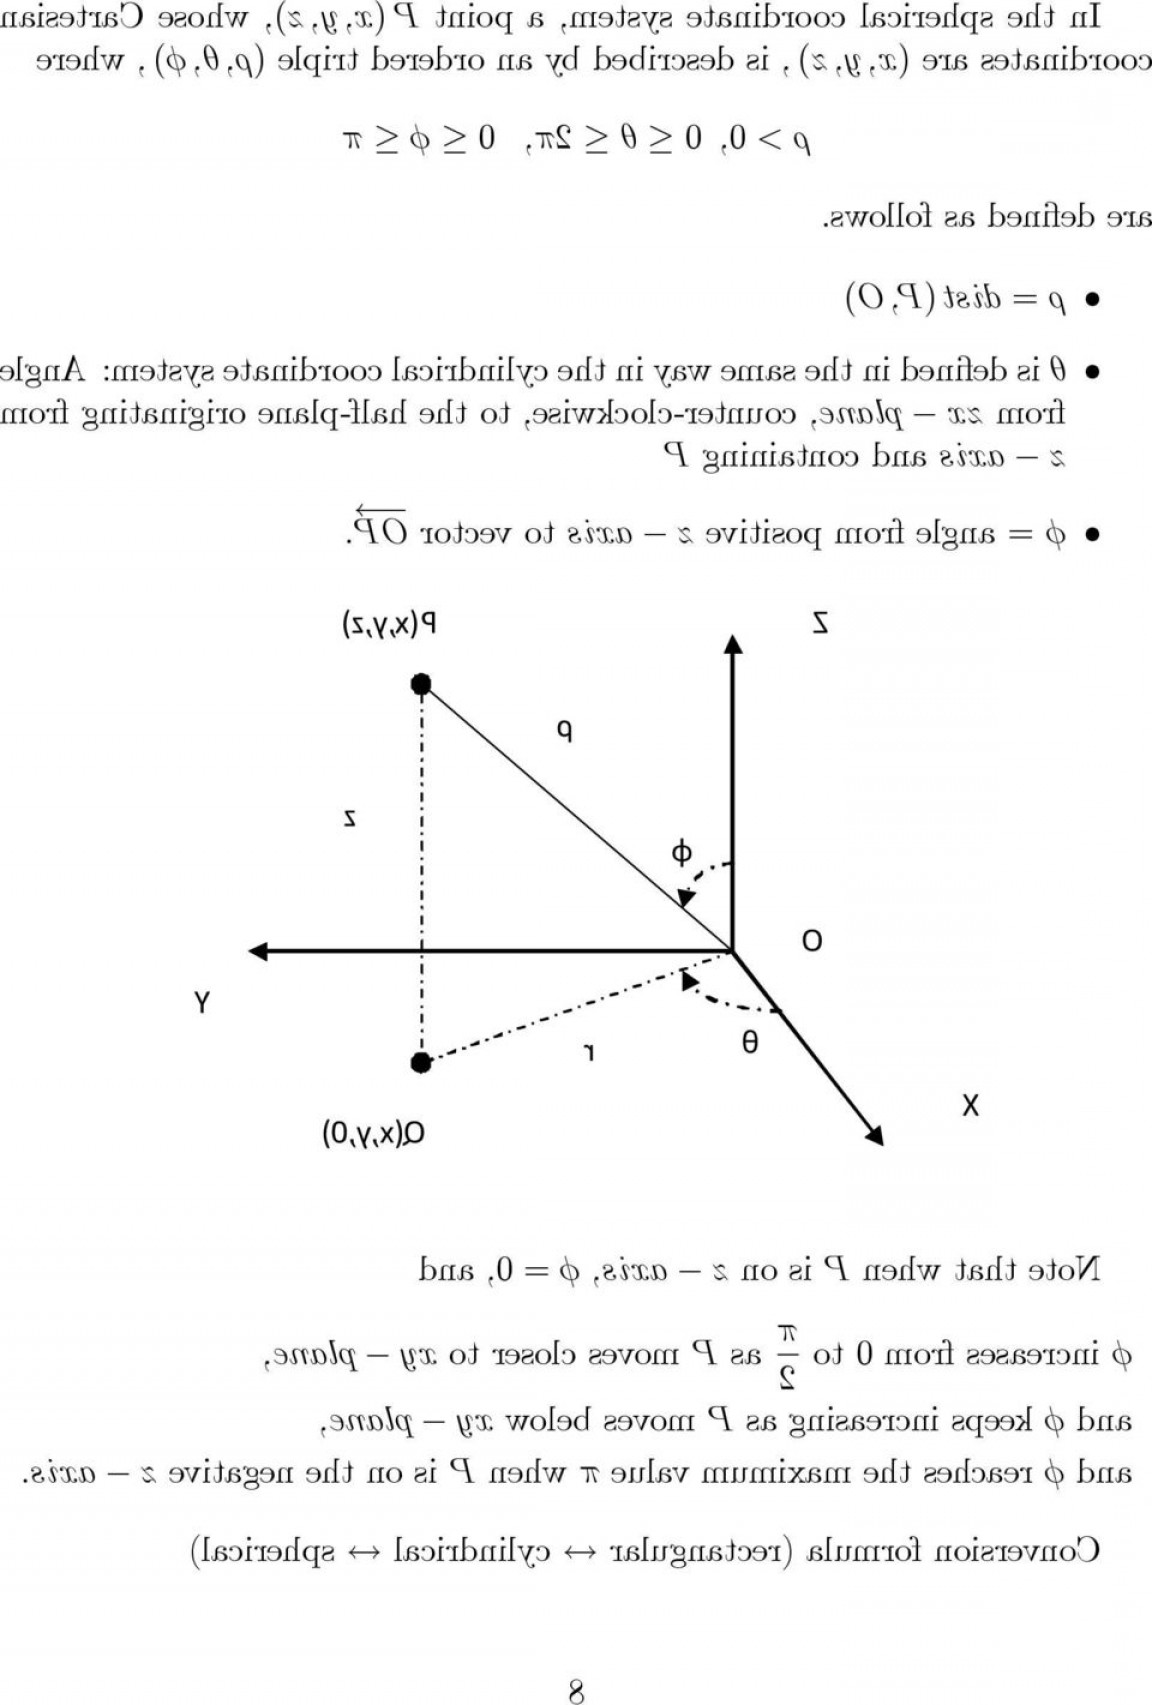 Unit Vectors Cylindrical Coordinate System: Section Cylindrical And Spherical Coordinates A Review On The Polar Coordinates